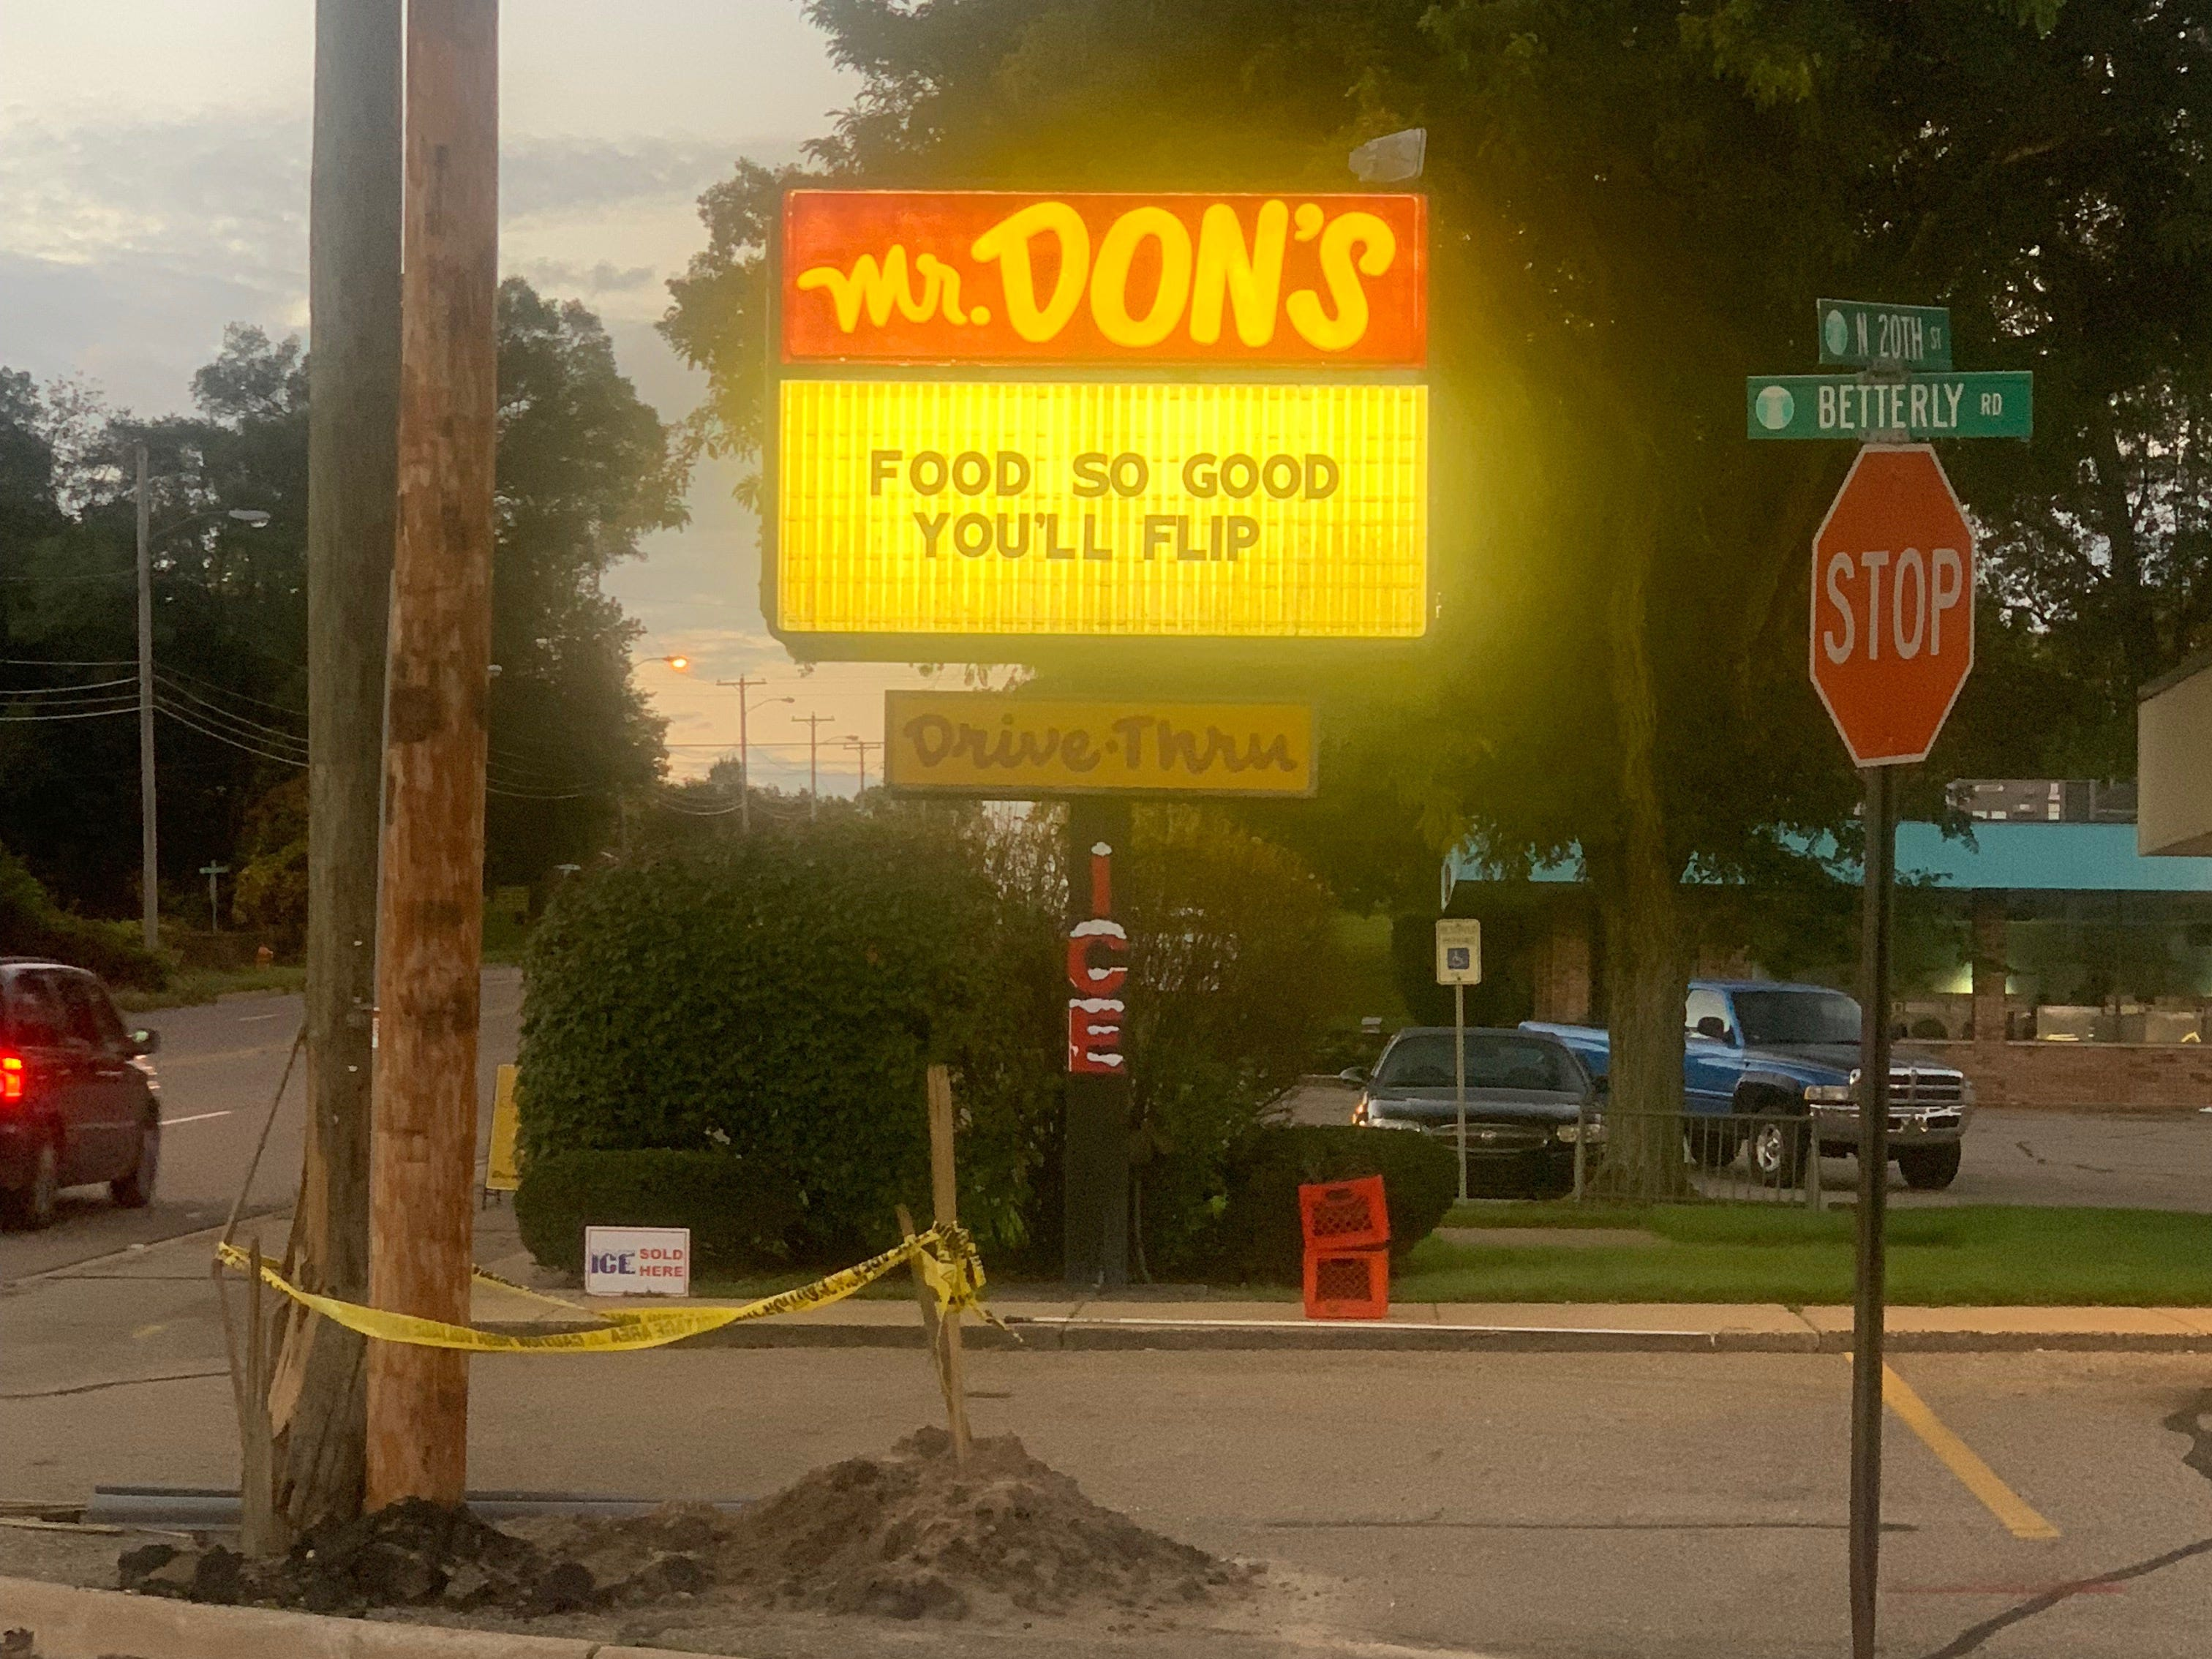 A message on the marquee in front of Mr. Don's, 341 North 20th Street in Springfield after a car flipped over and crashed into a utility pole near the business.